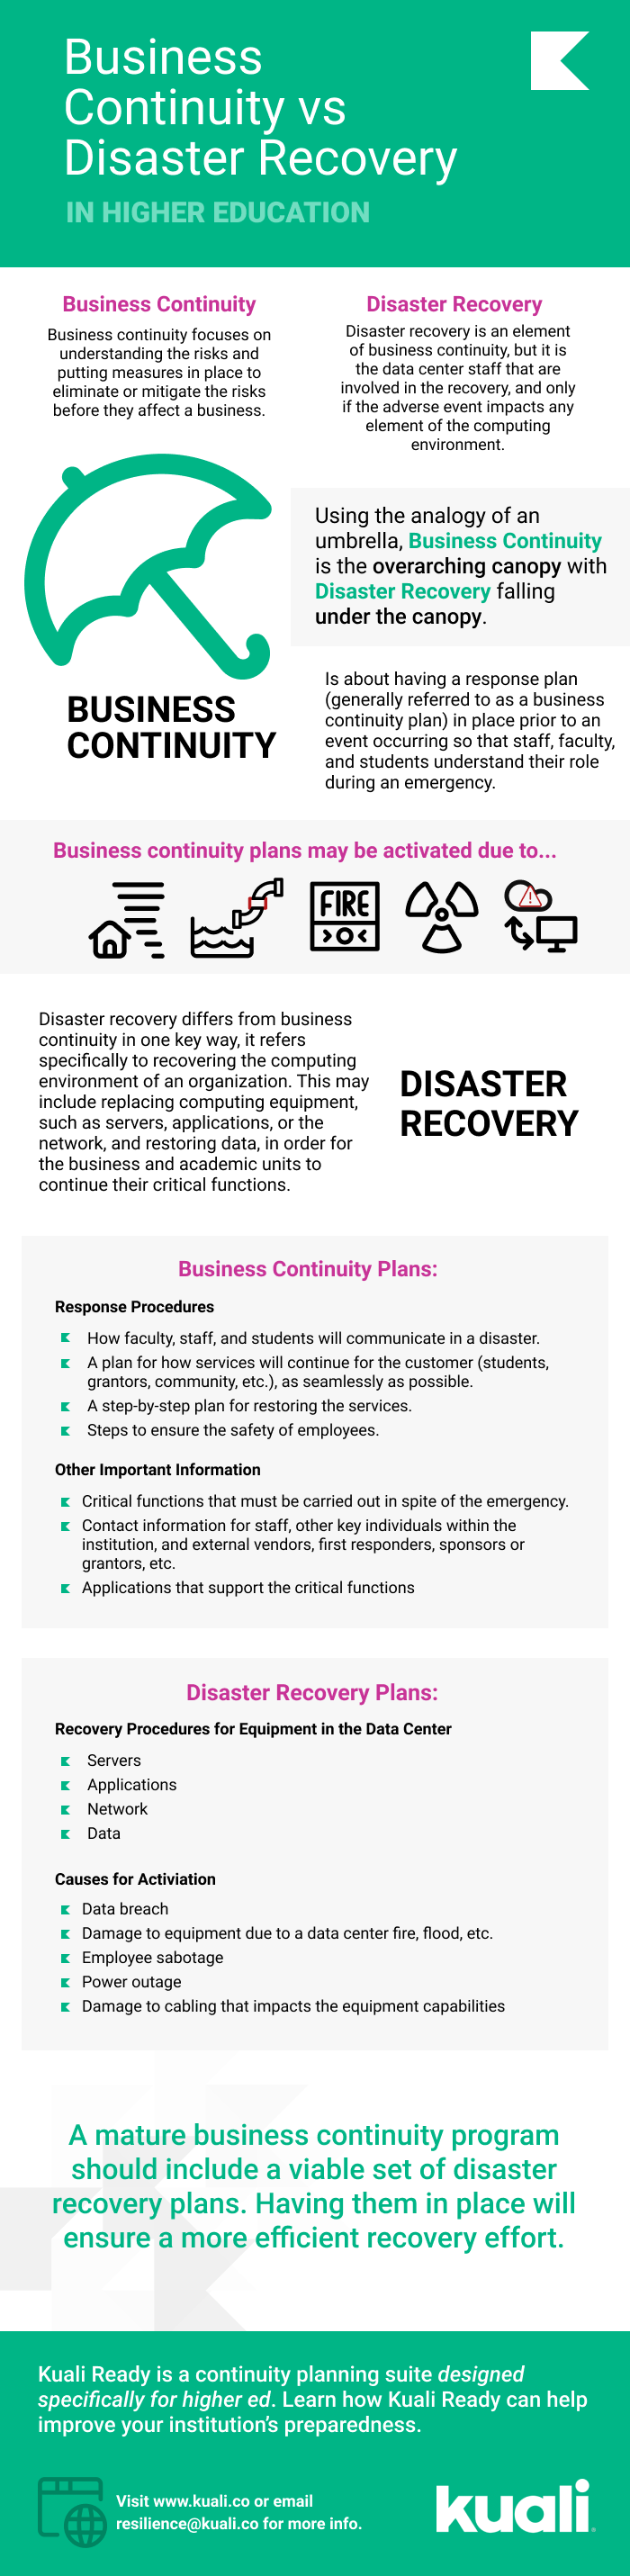 Business Continuity vs Disaster Recovery Infographic